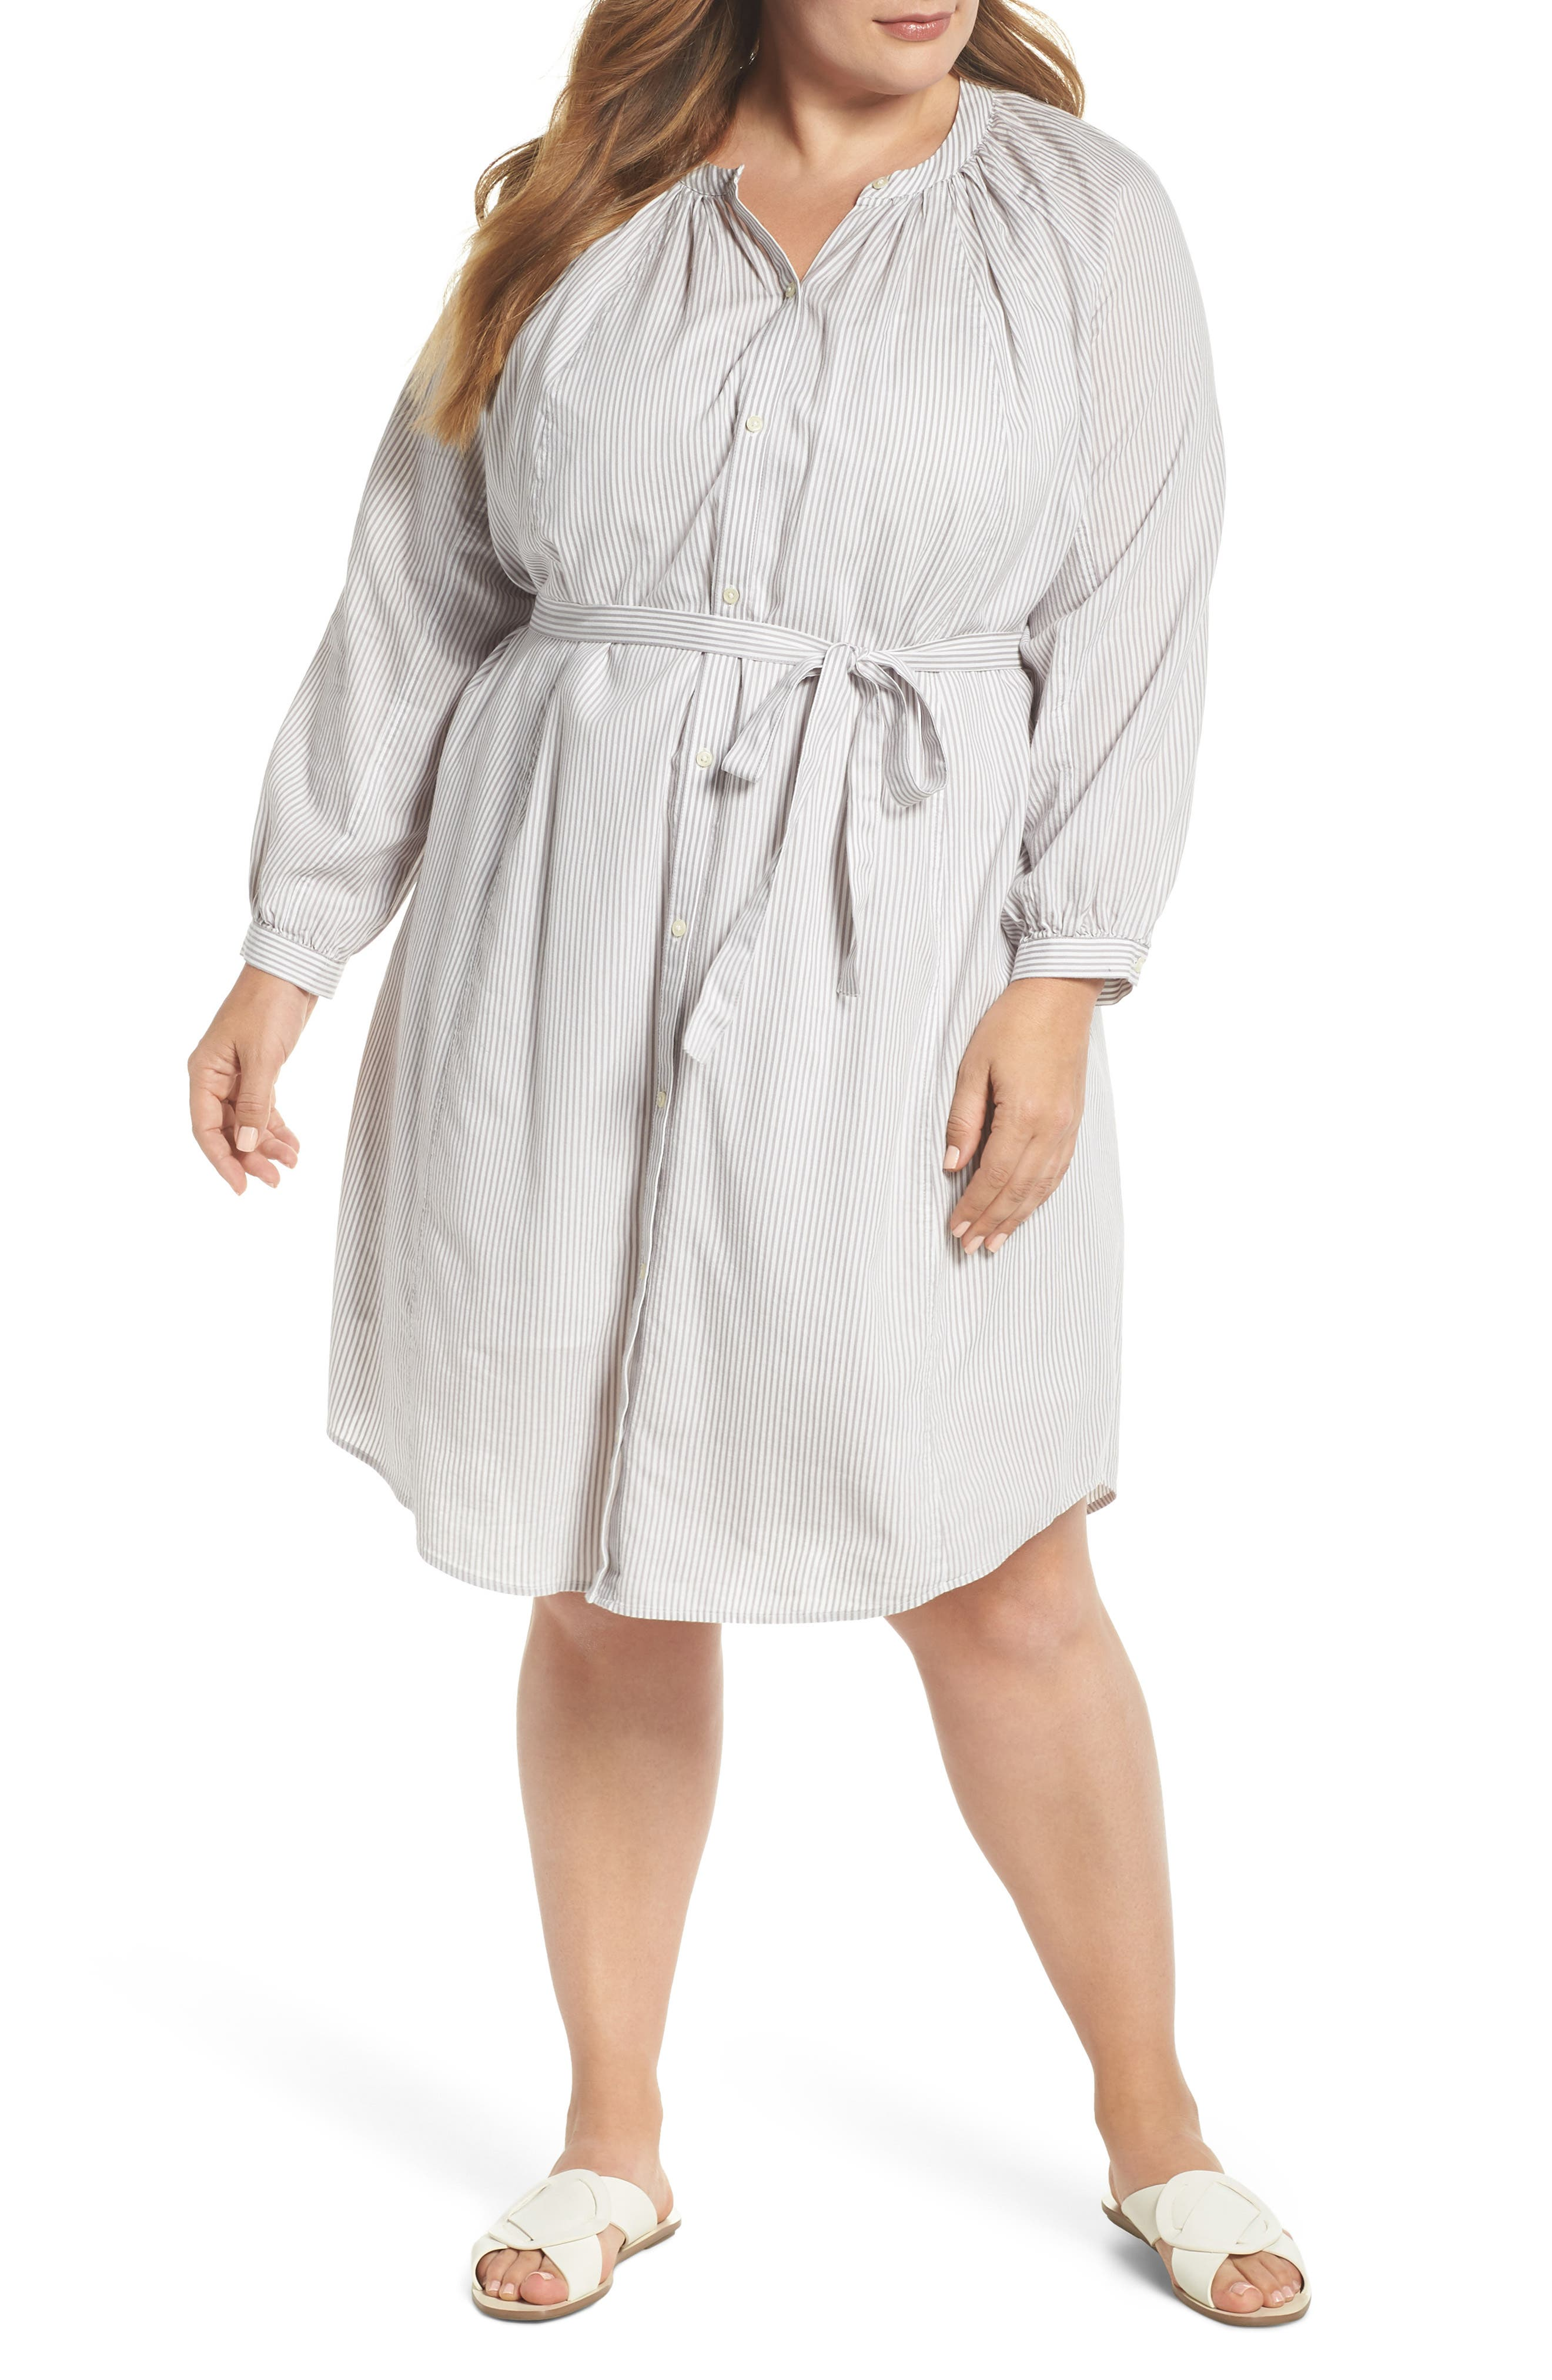 LUCKY BRAND,                             Stripe Peasant Dress,                             Main thumbnail 1, color,                             060